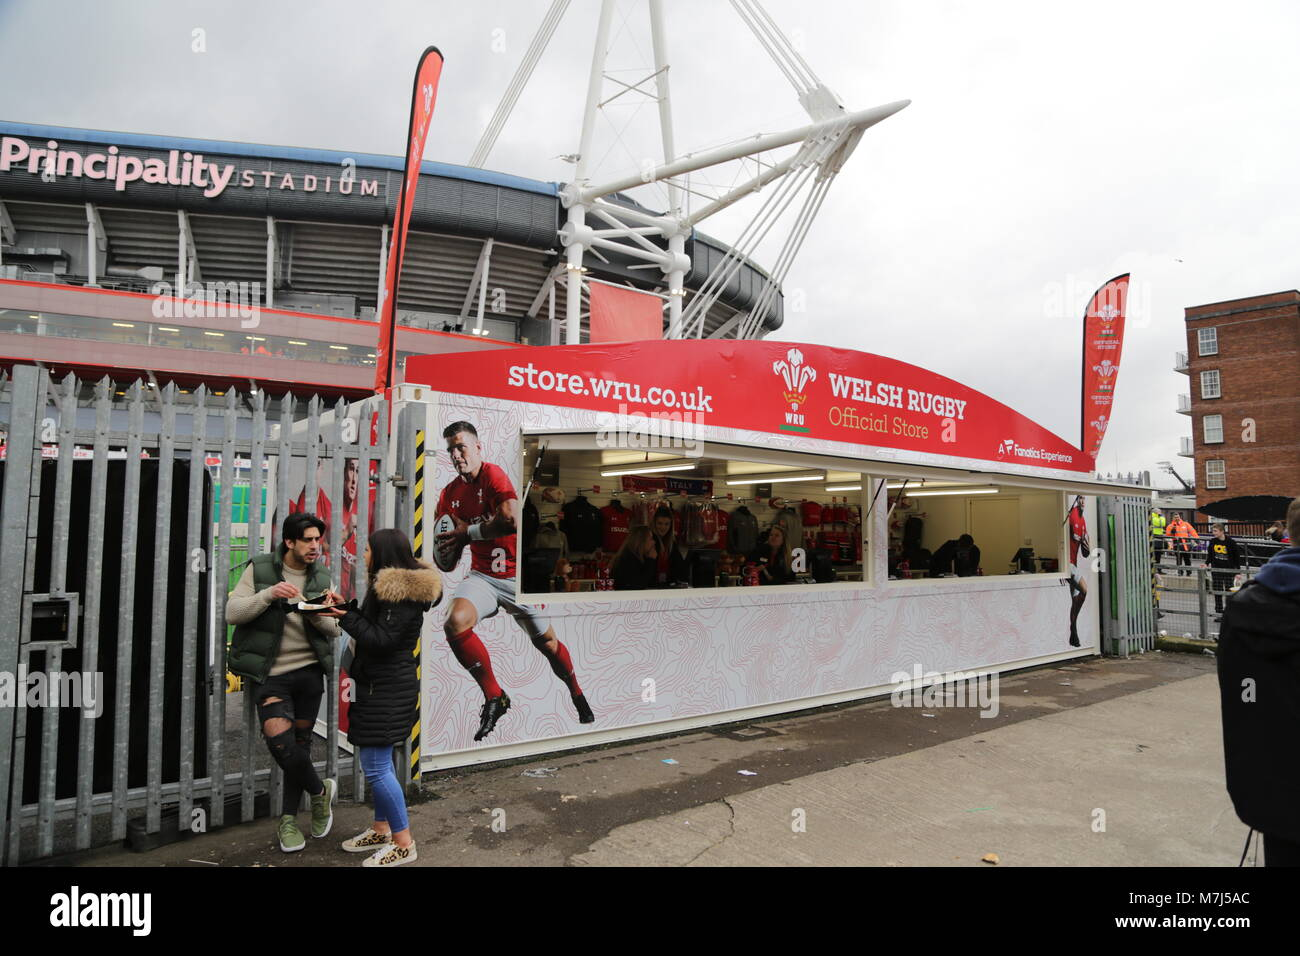 I went out today to take photos of 6 Nations Rugby Wales vs Italy at Principality Stadium Cardiff. - Stock Image